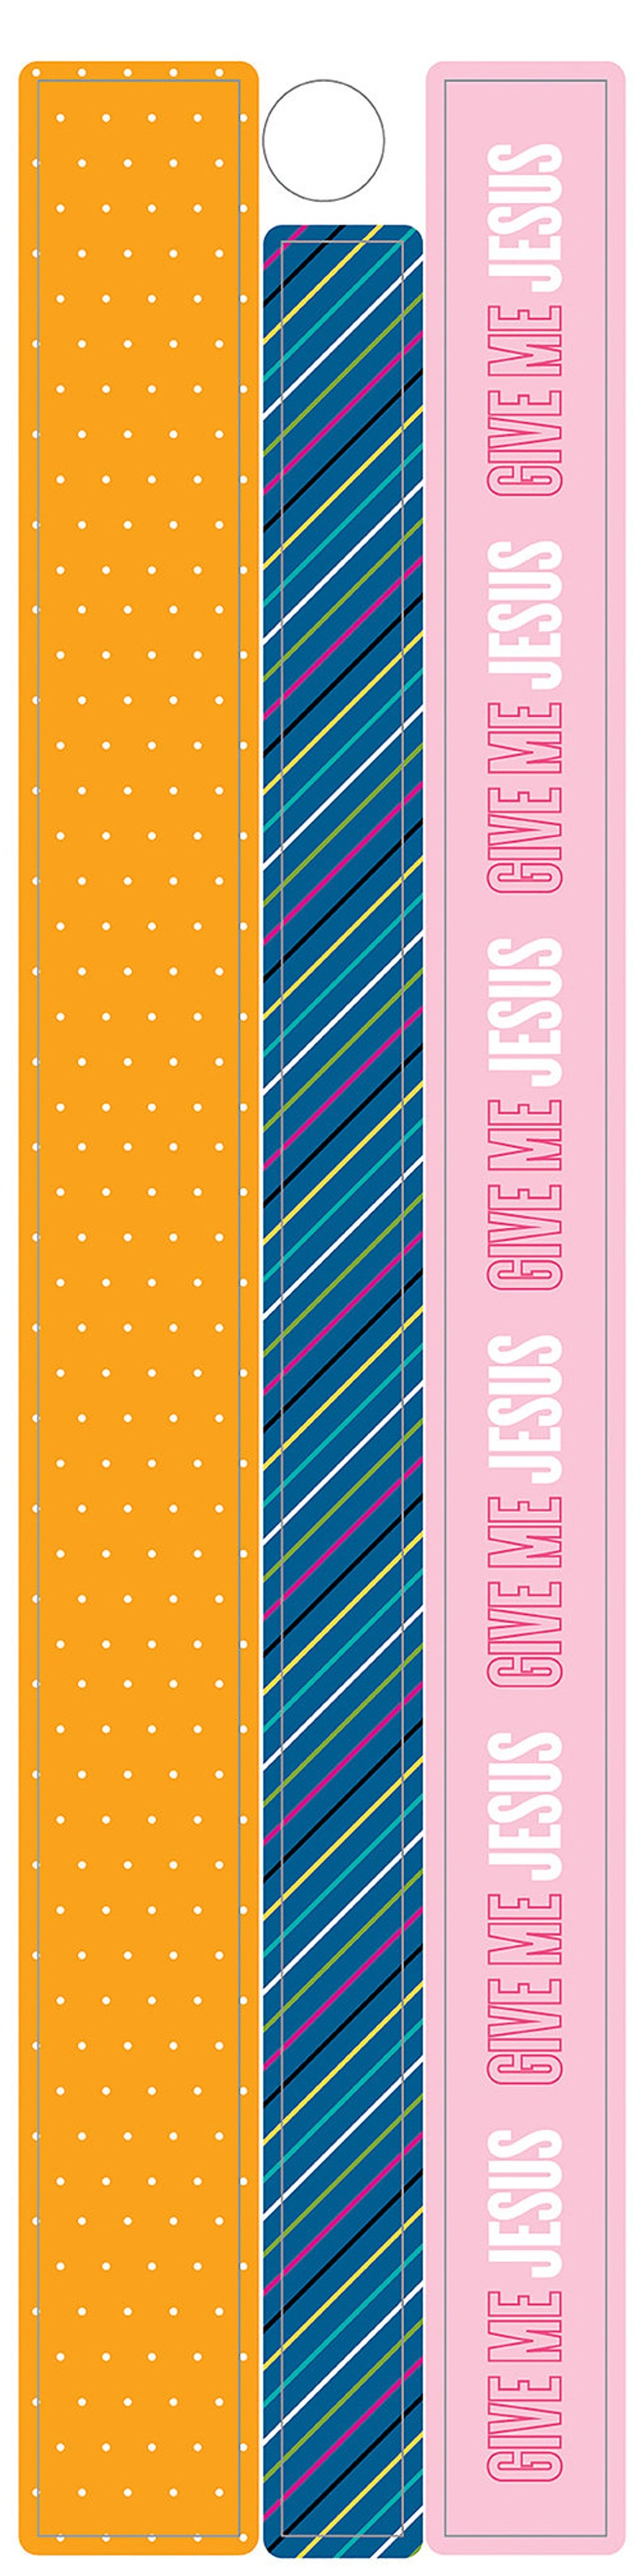 Strips of Washi Tape for Bible JournalingScrapbookingPaper Crafts Illustrated Faith Colorful Washi Stickers